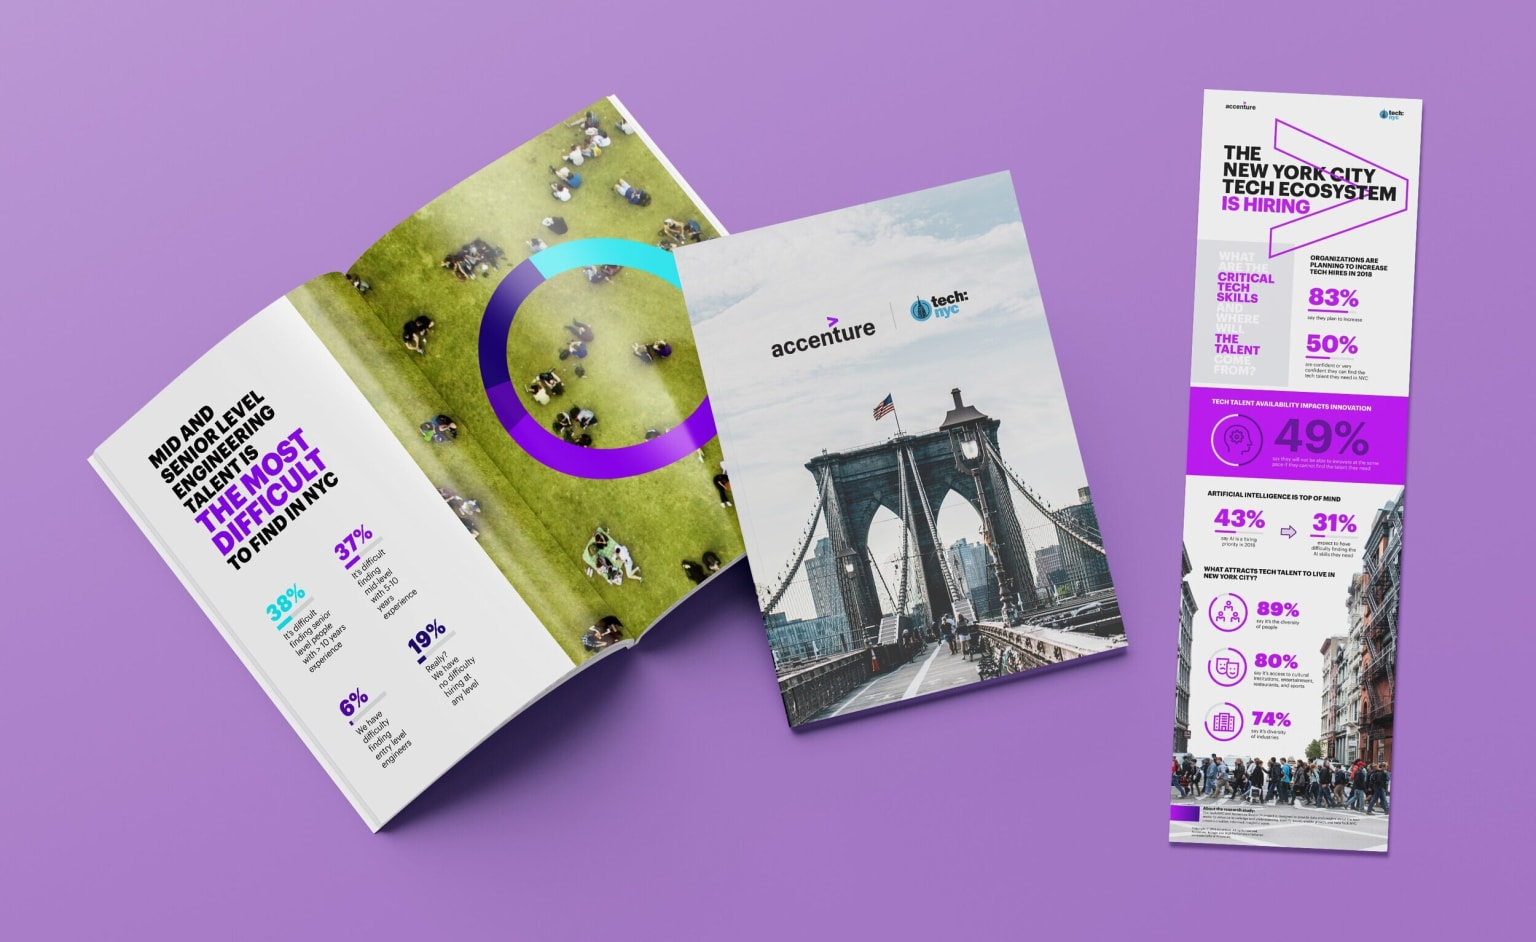 Accenture - Tech: NYC